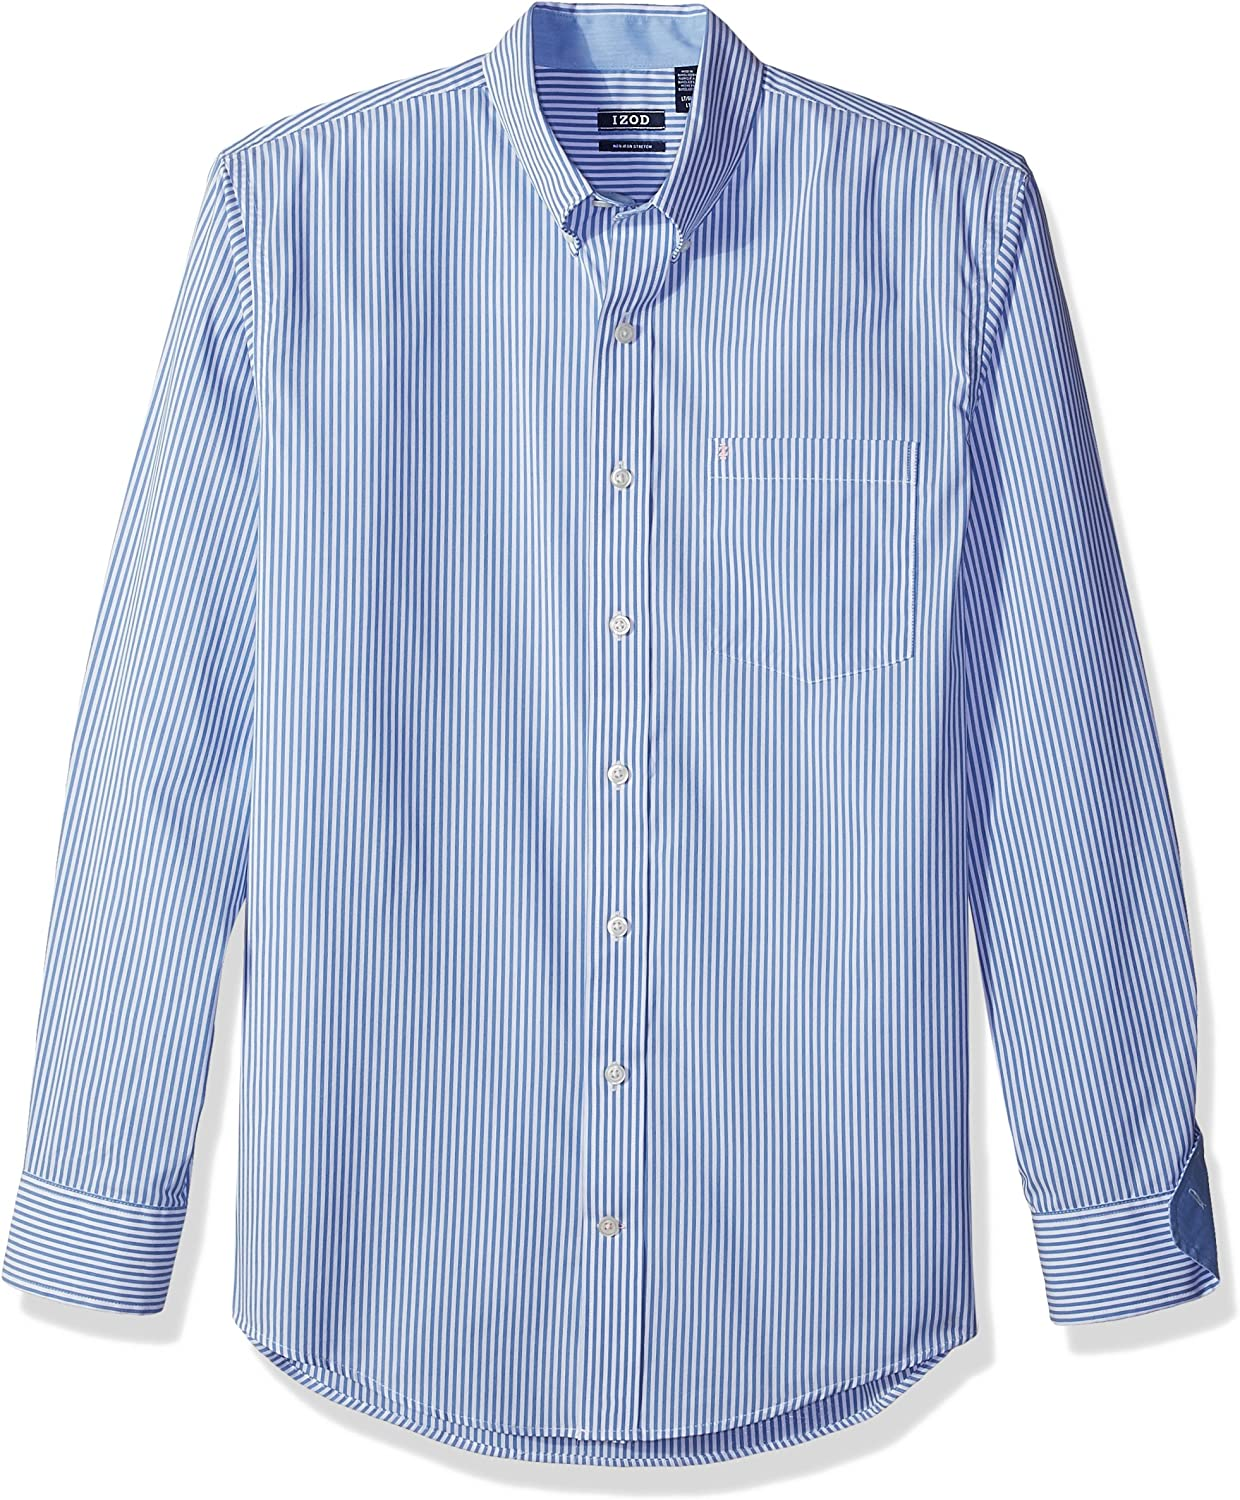 Cromoncent Mens Long Sleeve Striped Turn Down Tops Button Front Shirts